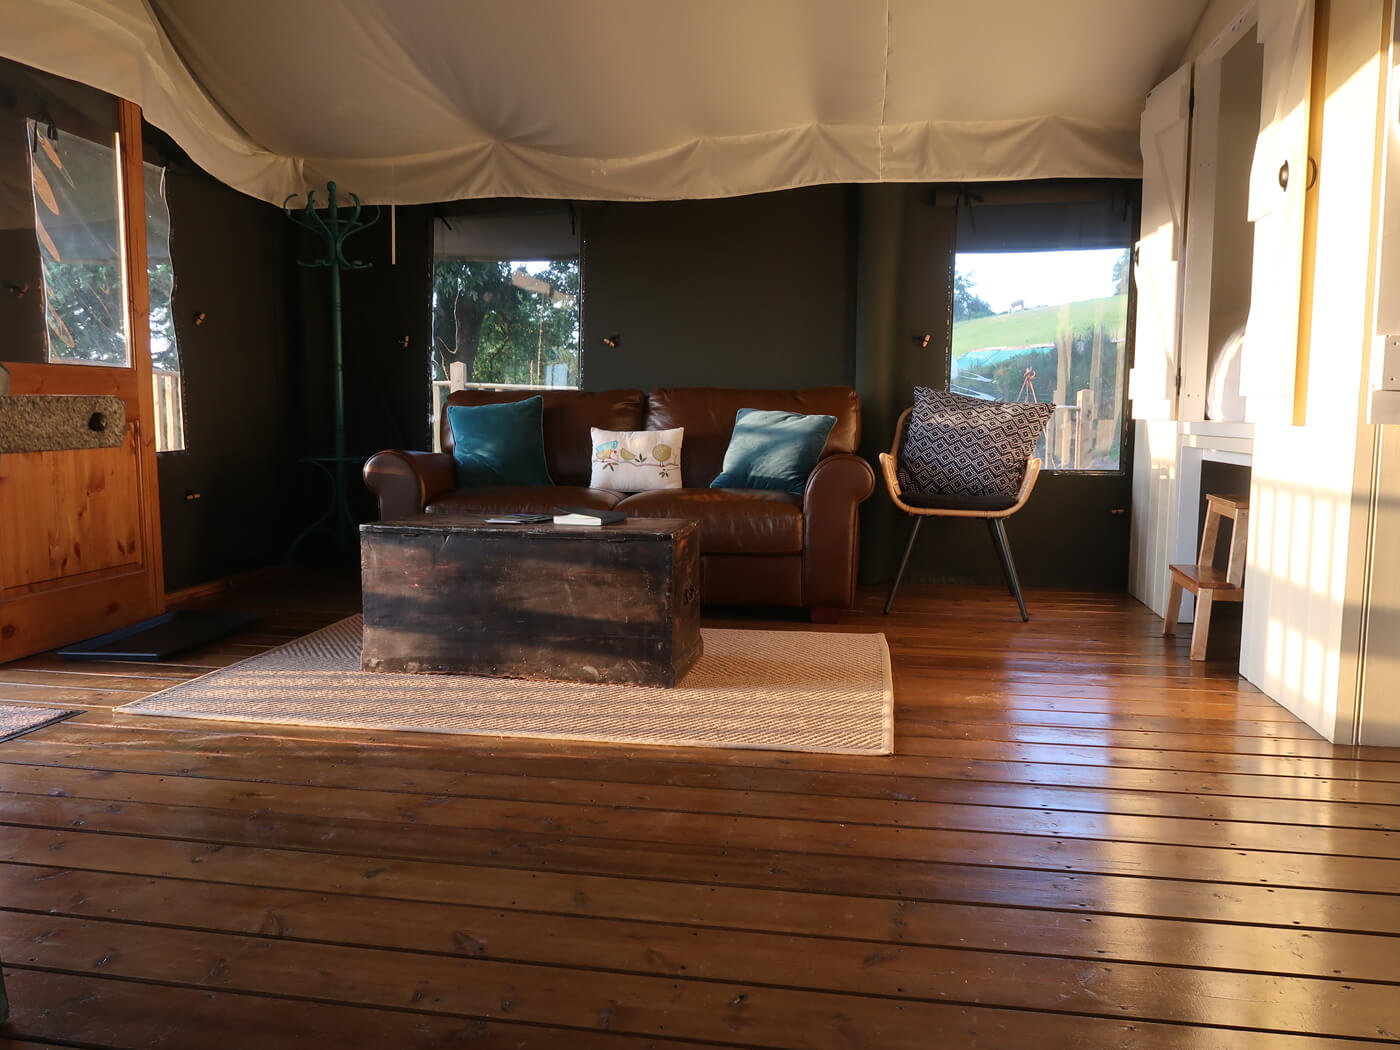 The lounge in our wheelchair accessible safari tent. The golden sun is streaming through the open sliding doors, casting beautiful golden light into the lounge.